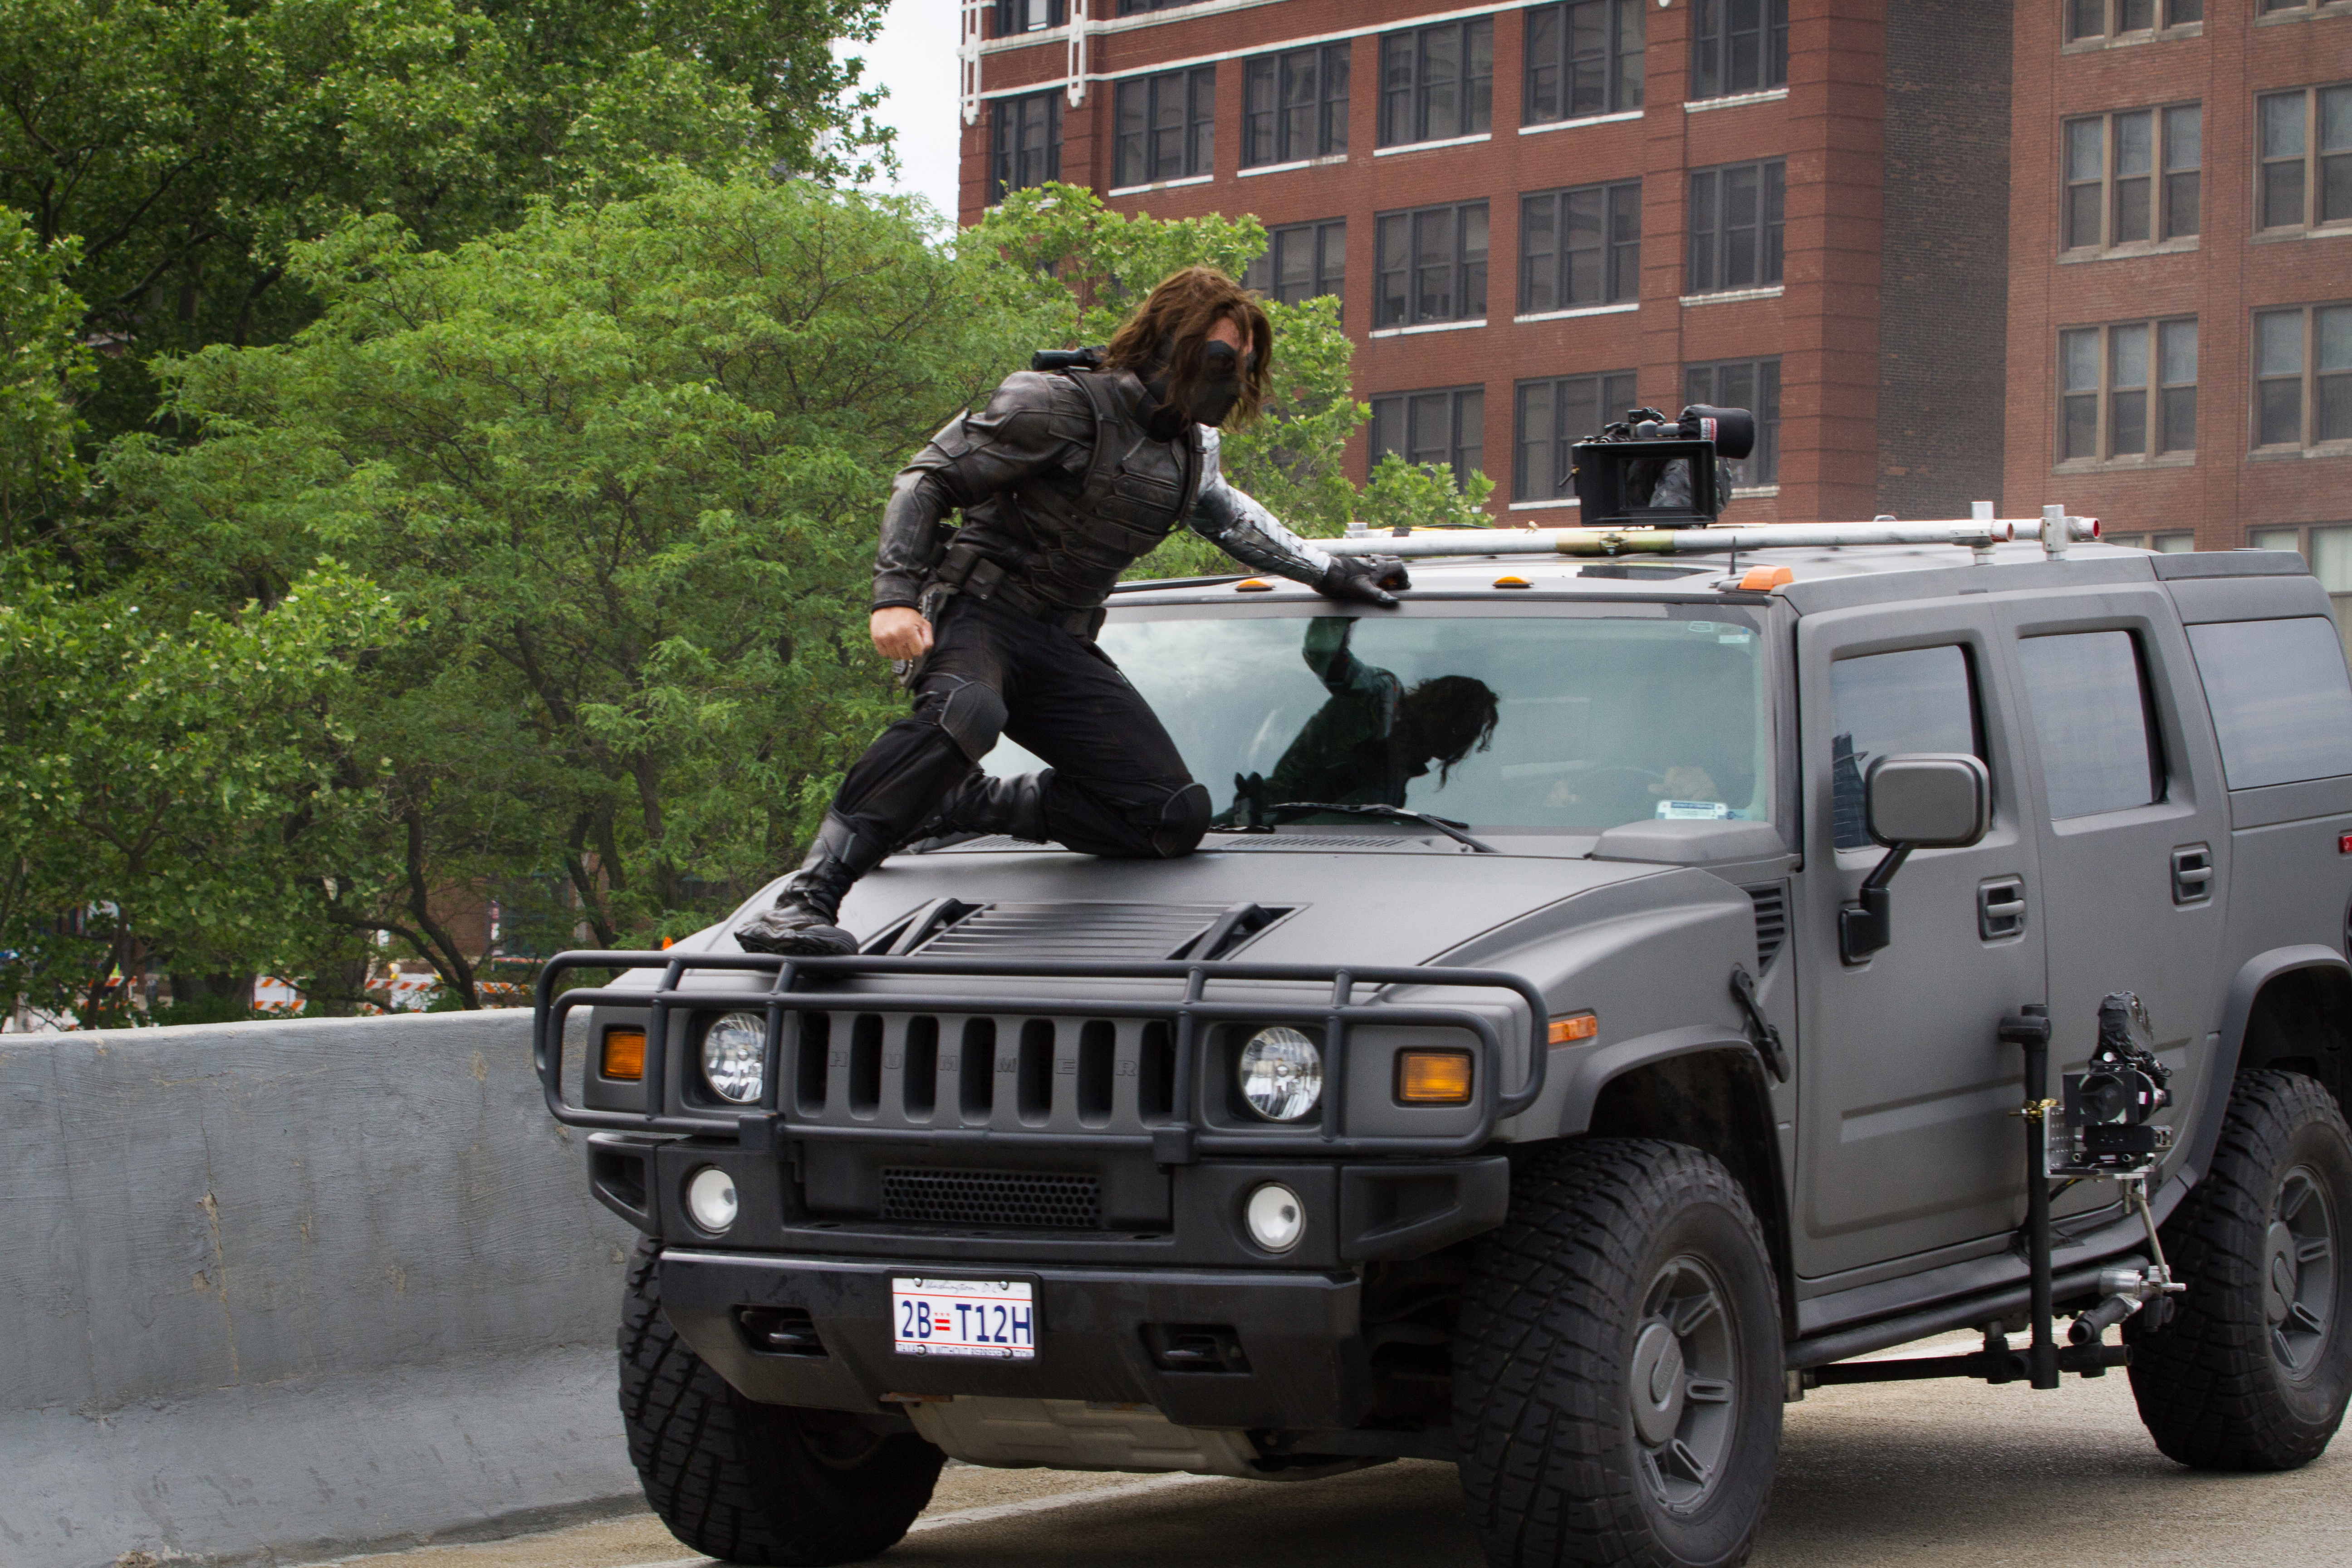 Sebastian Stan, the Winter Soldier, braces himself during a chase scene.